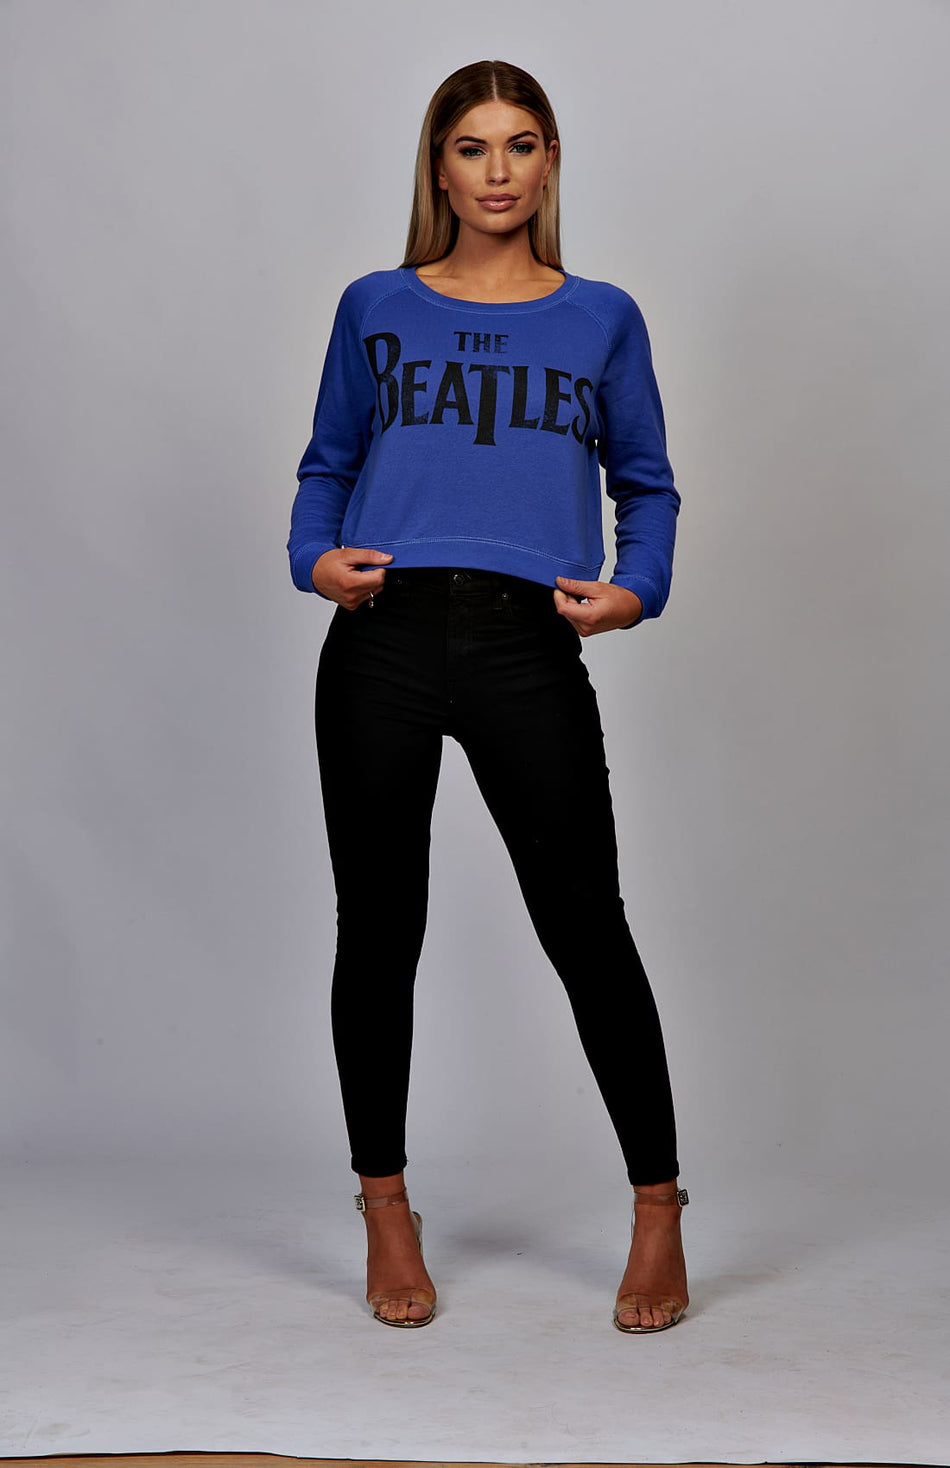 Kurzes Sweatshirt von Blue Beatles